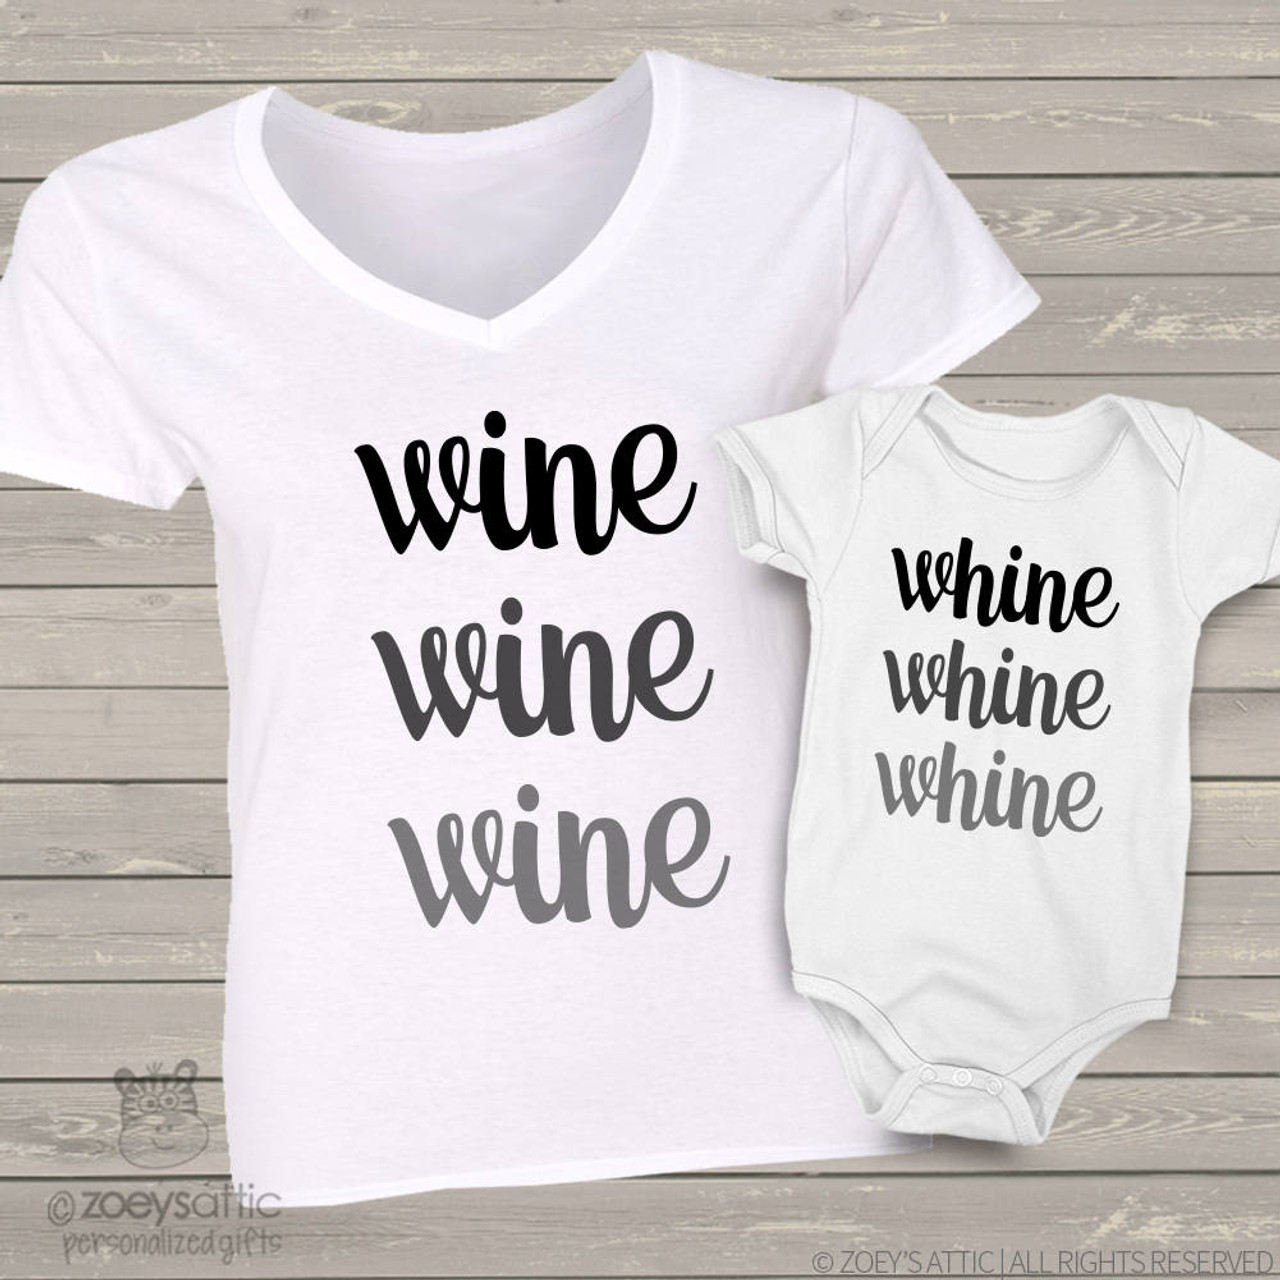 Custom mom baby shirts whine and wine two shirt gift set wine and whine mom baby matching shirt gift set negle Choice Image